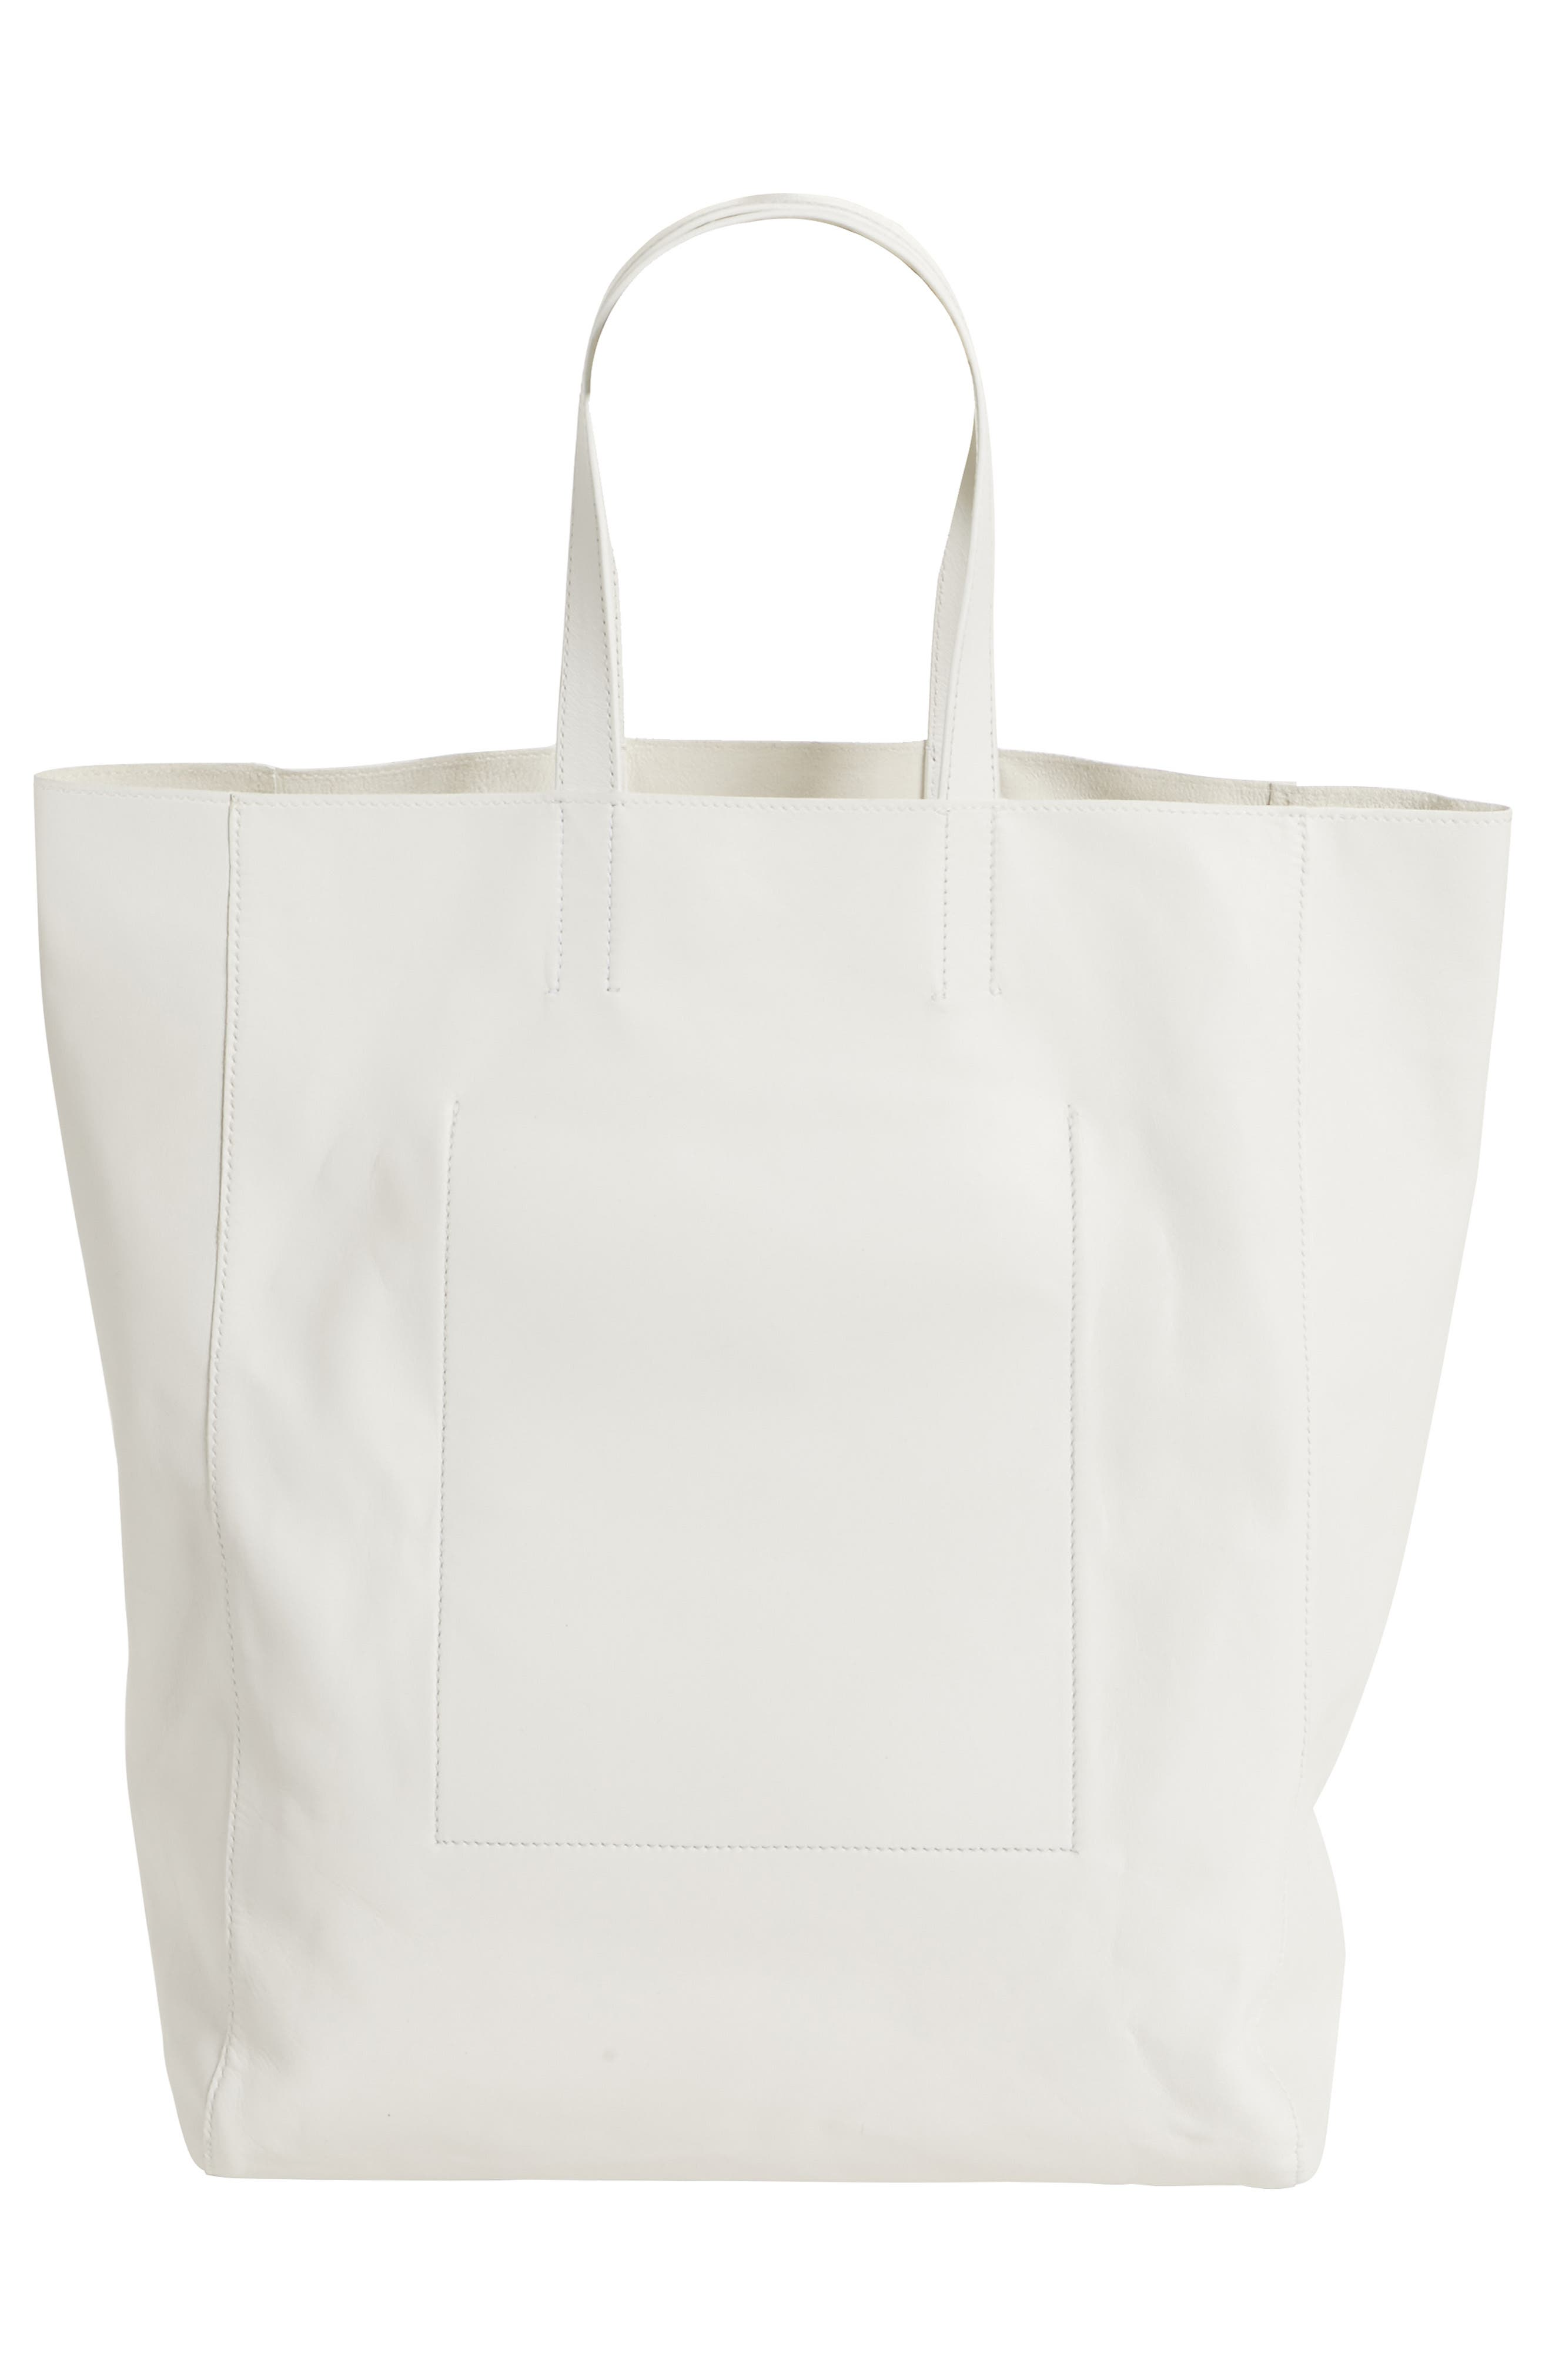 x Andy Warhol Foundation Boots Leather Tote,                             Alternate thumbnail 3, color,                             White/ Black